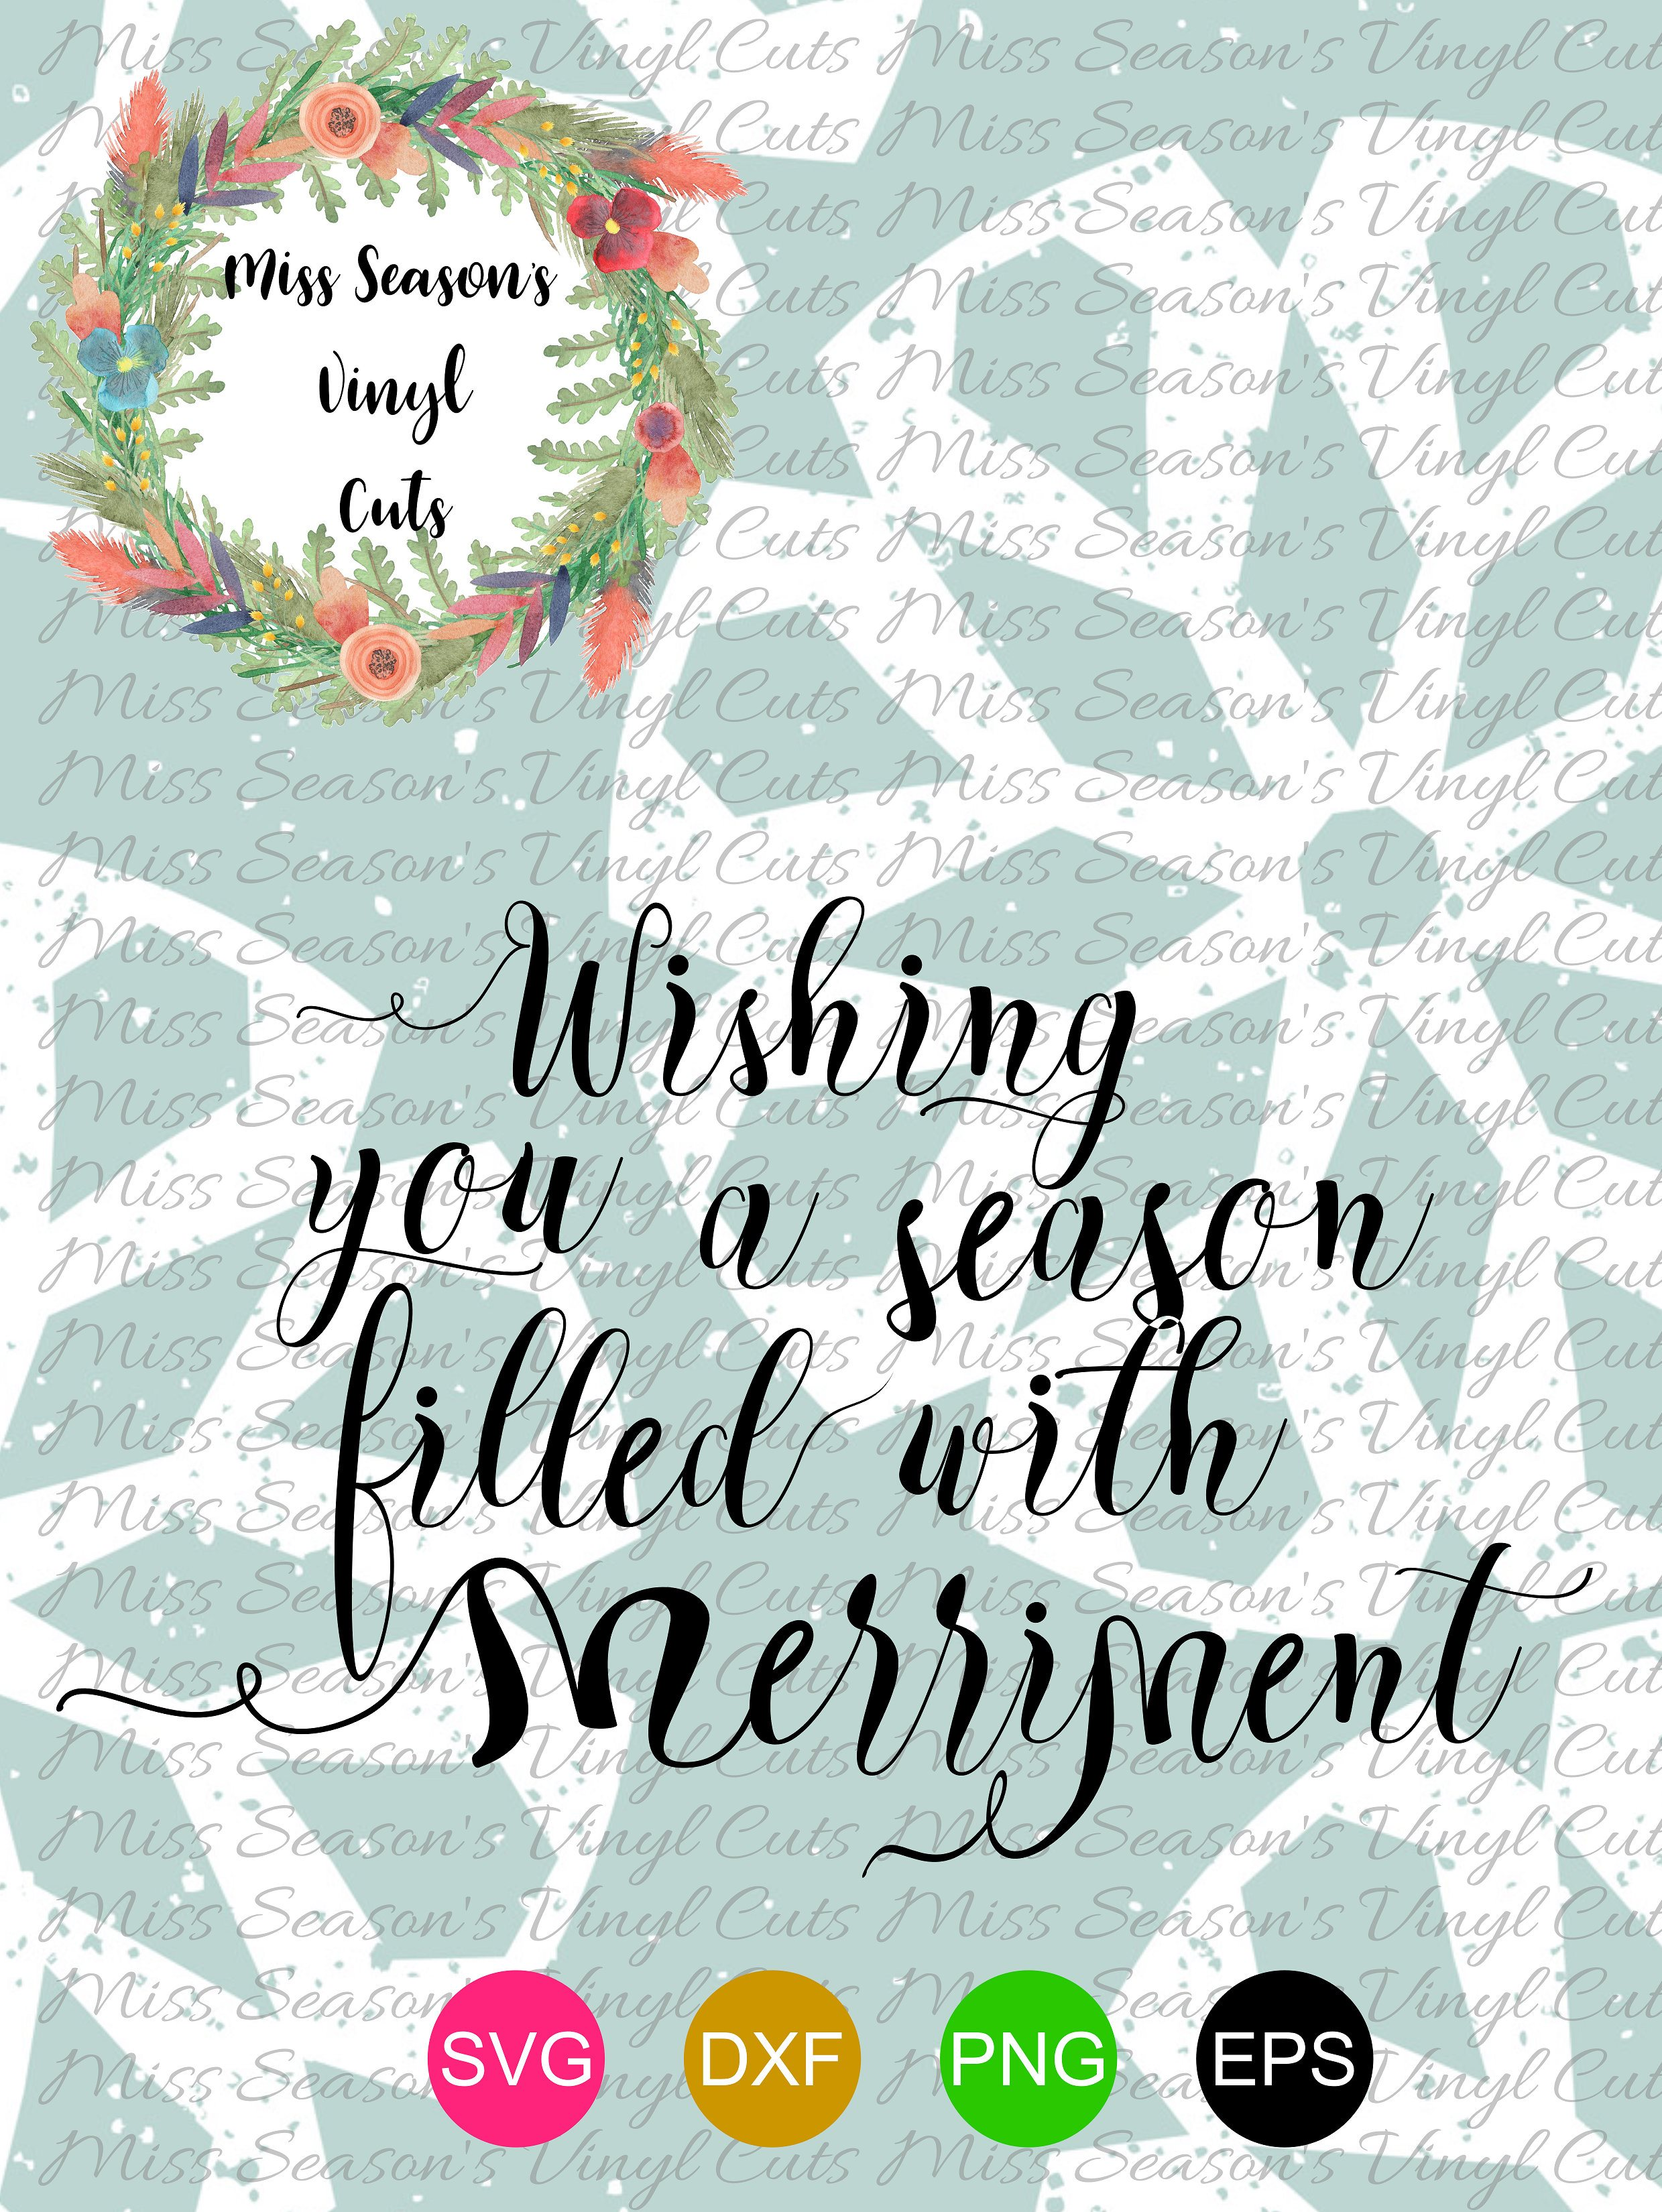 Wishing You a Season of Merryment Svg example image 1